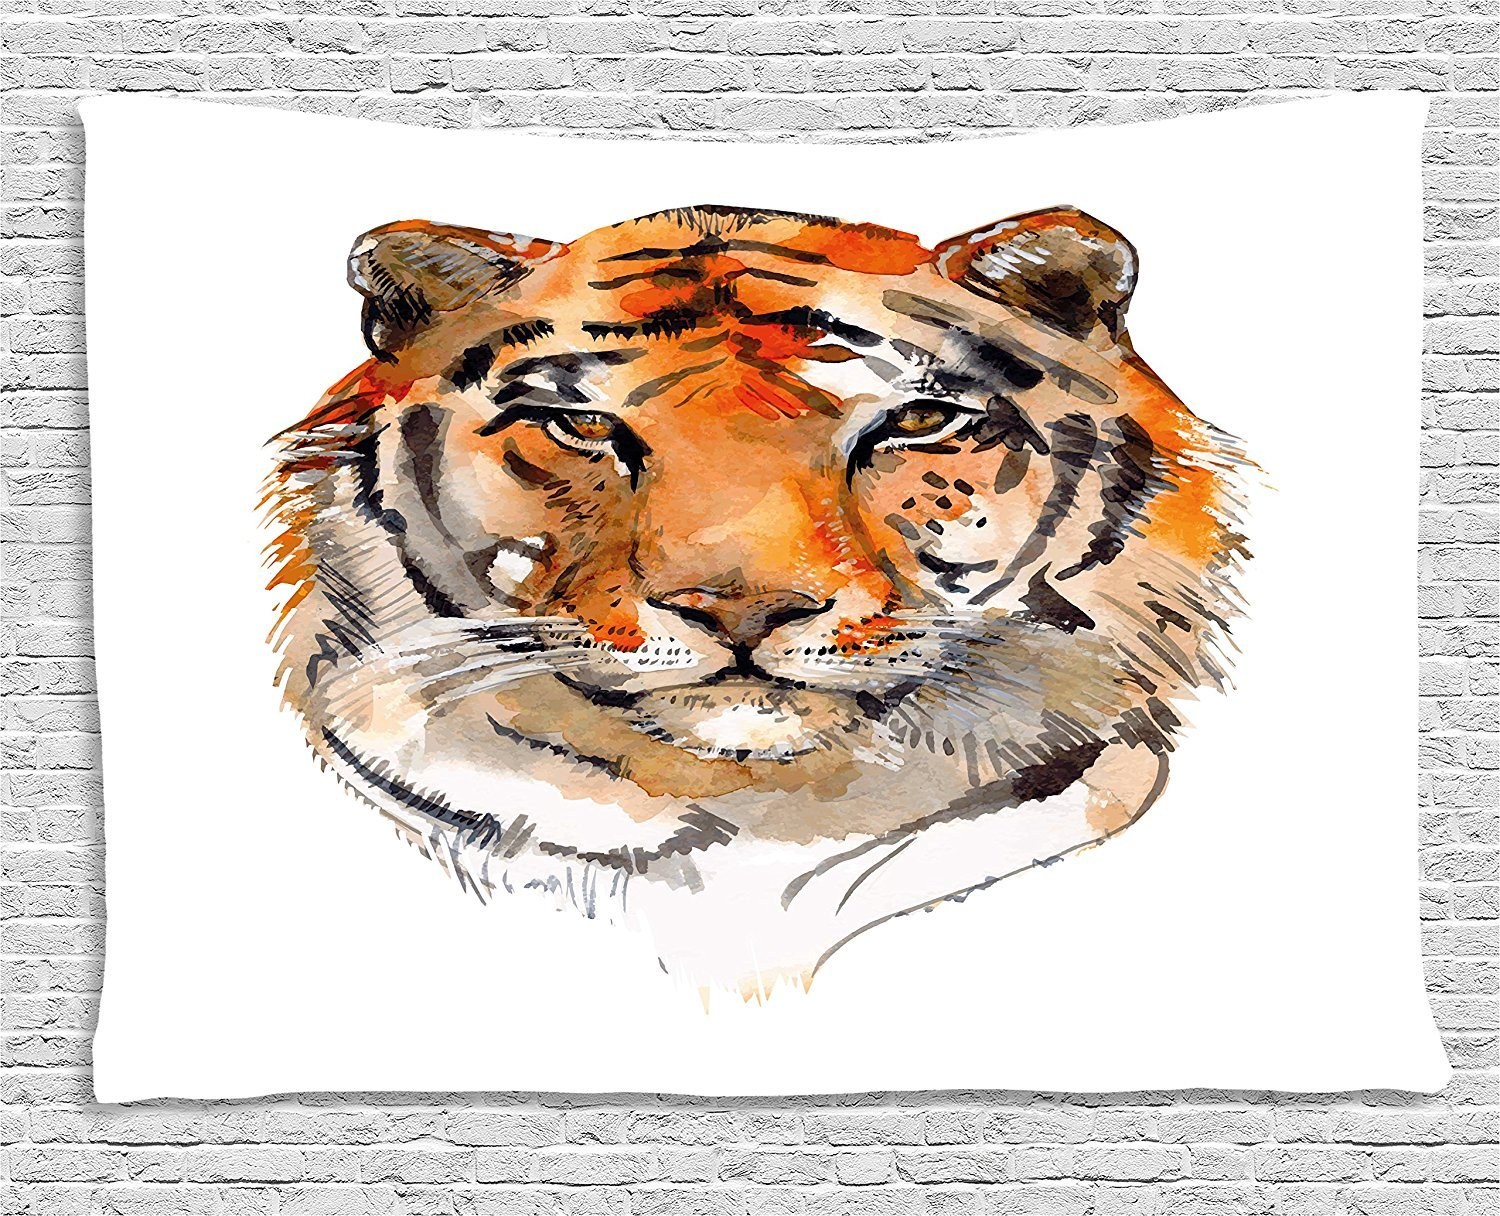 Tiger Tapestry, Feline Animal with Calming Stare Hand Drawn Watercolor Art Exotic Wildcat Hunter, Wall Hanging for Bedroom Living Room Dorm, 80 W X 60 L Inches, Orange Black